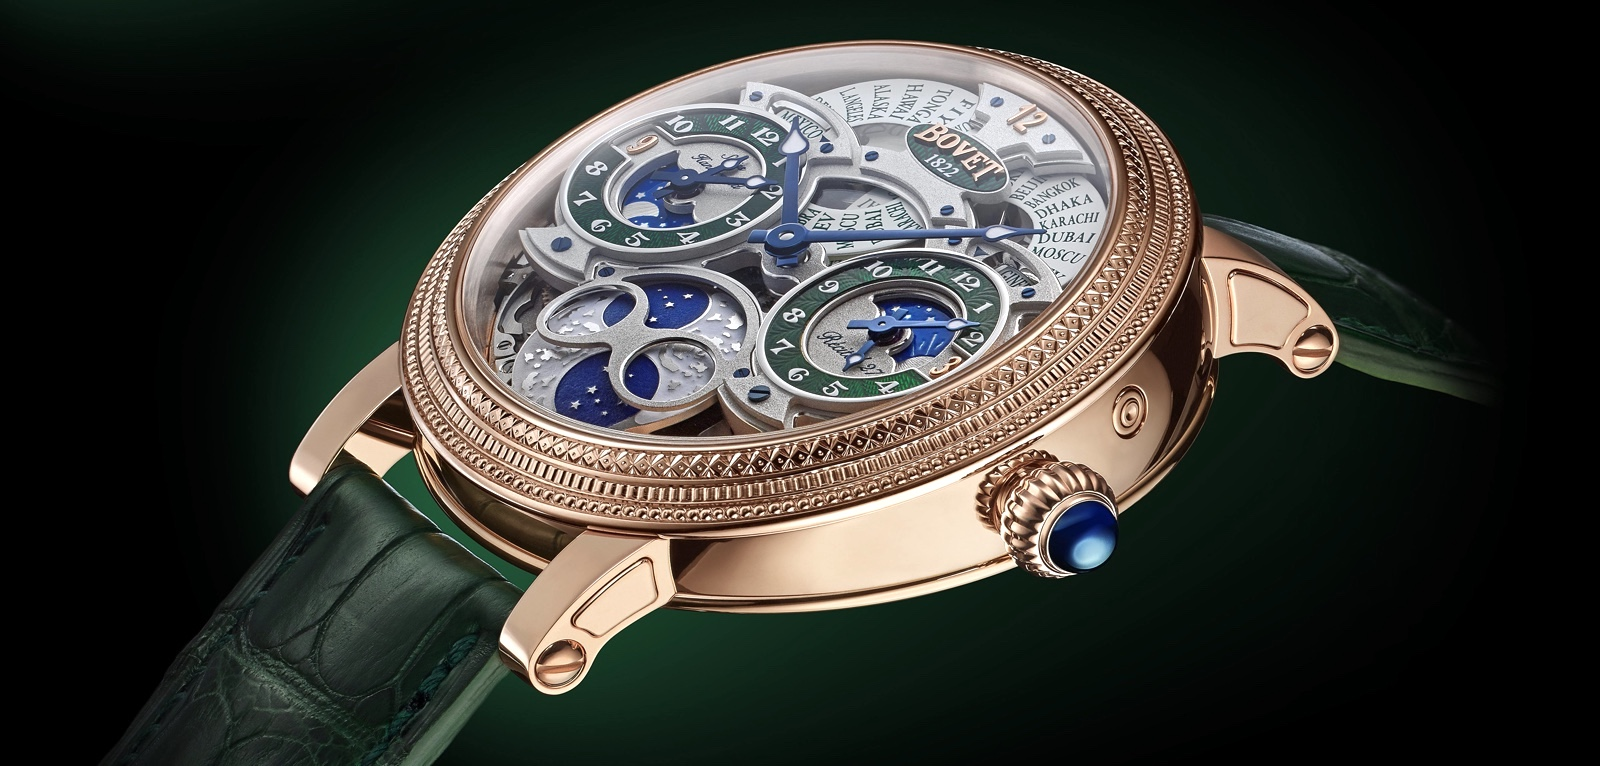 Bovet 1822 Récital 27 México Limited Edition Cover